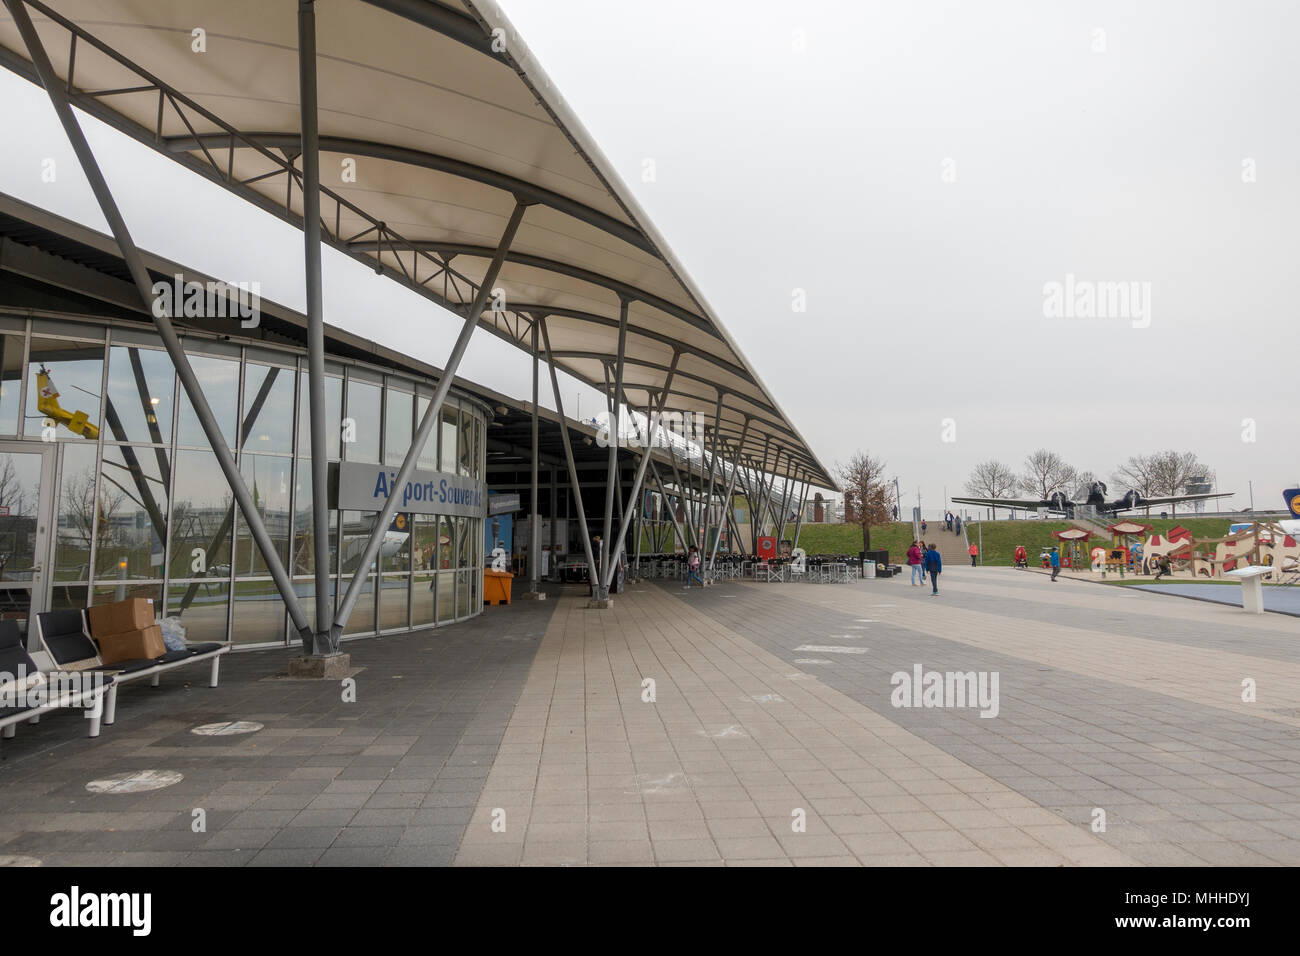 The Visitors Centre in the Visitors Park at Munich Airport, (Besucherpark des Flughafen München), Munich, Germany. - Stock Image